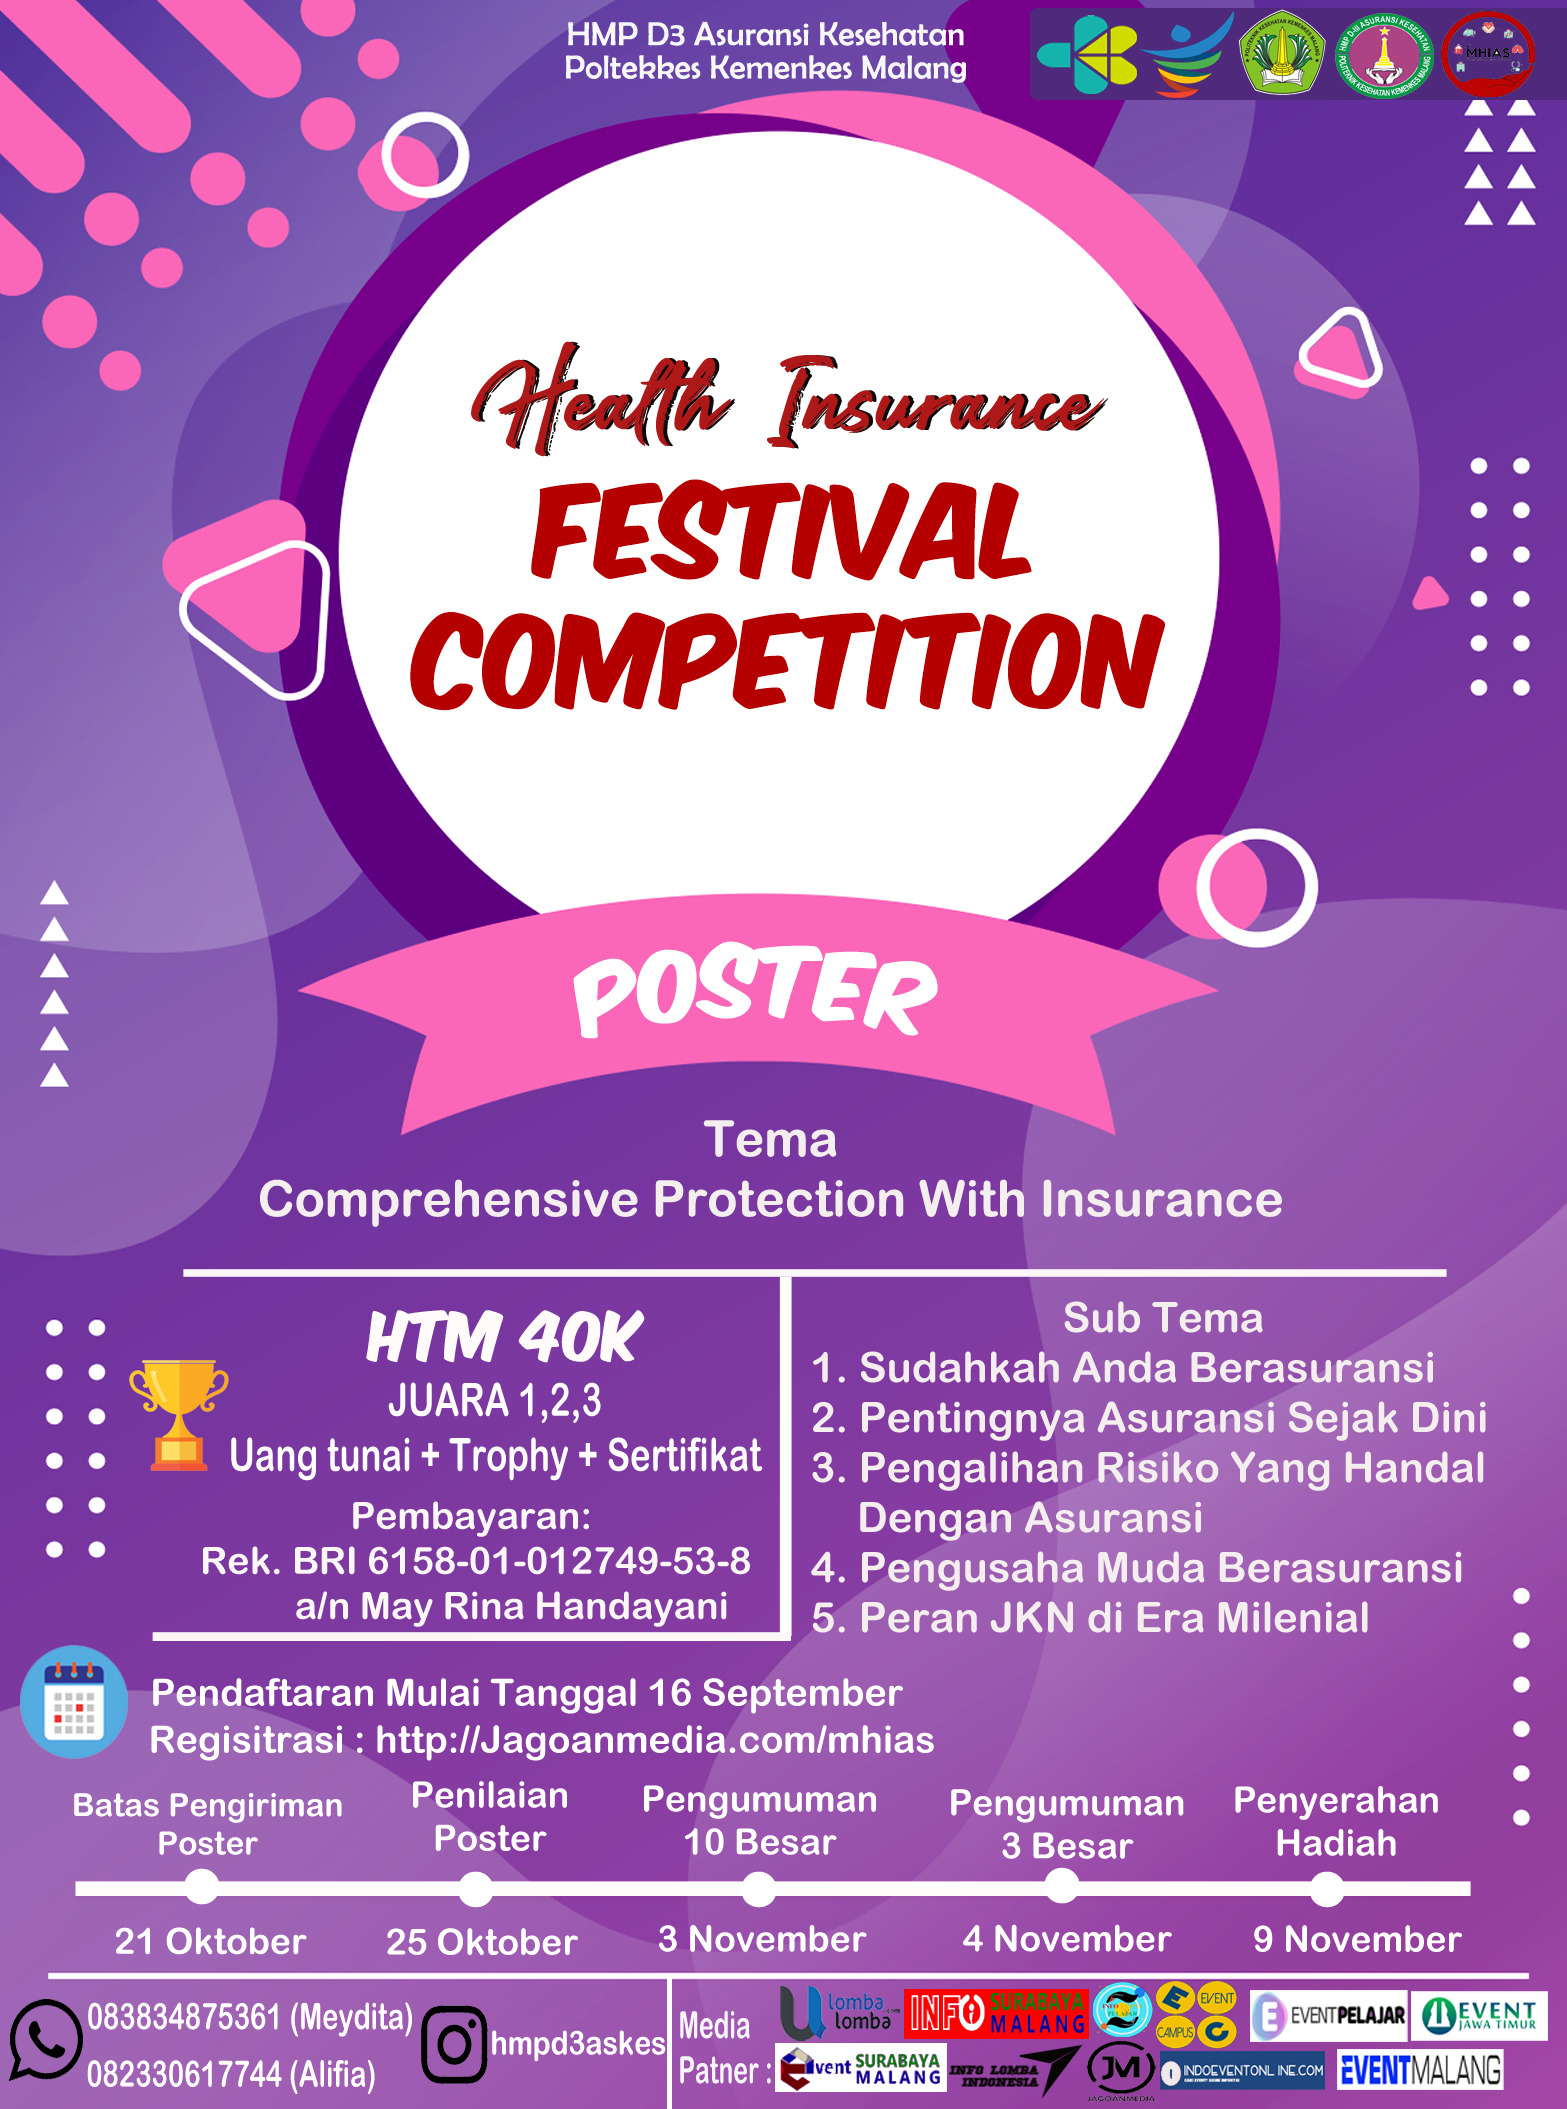 Health Insurance Festival Competition